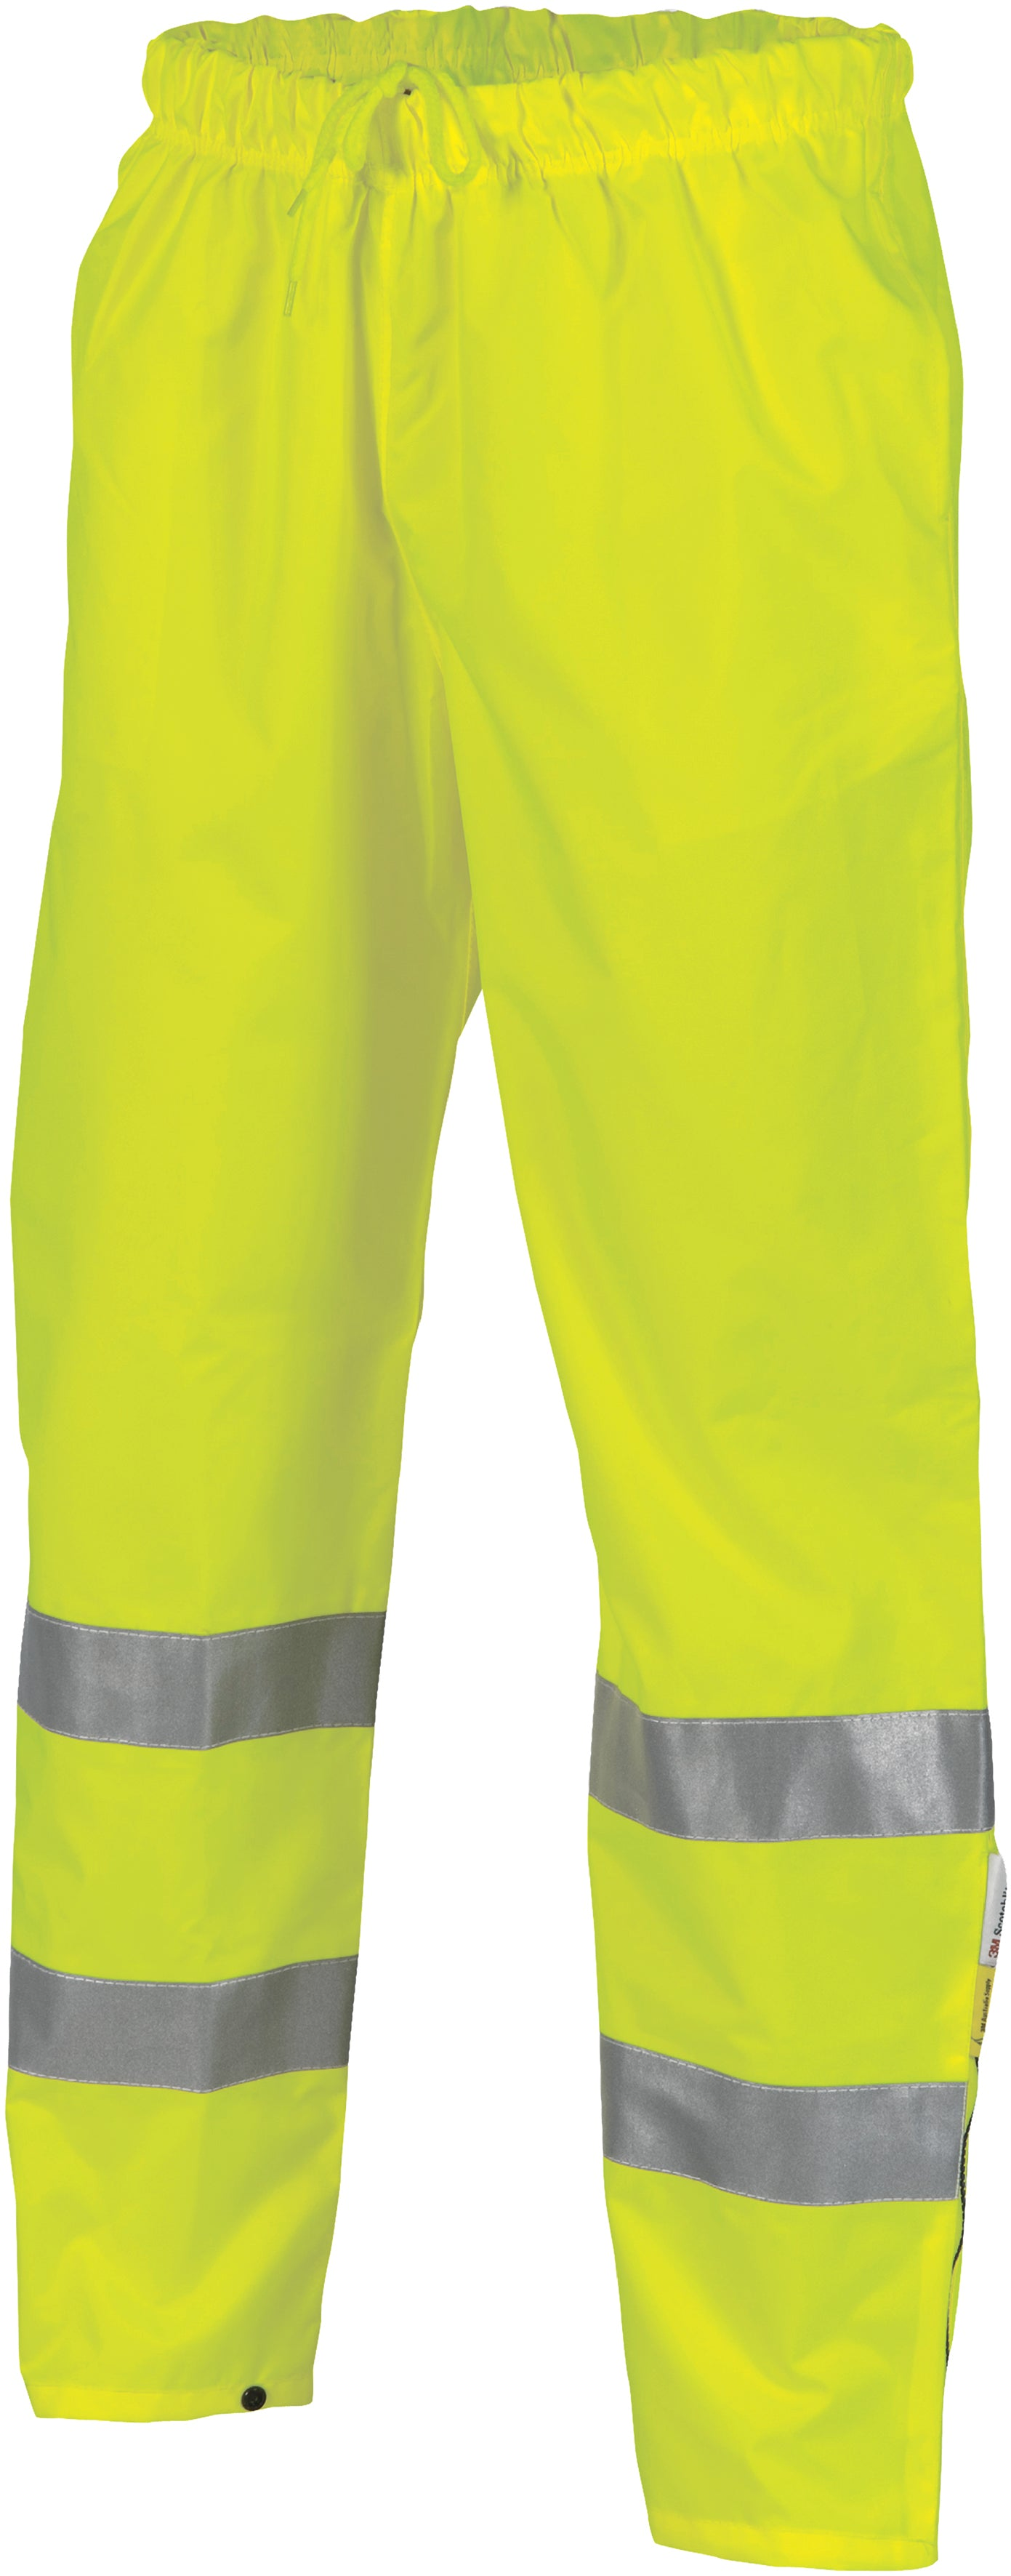 DNC - 3872 Hi Vis Breathable Rain Pants with 3M Tape